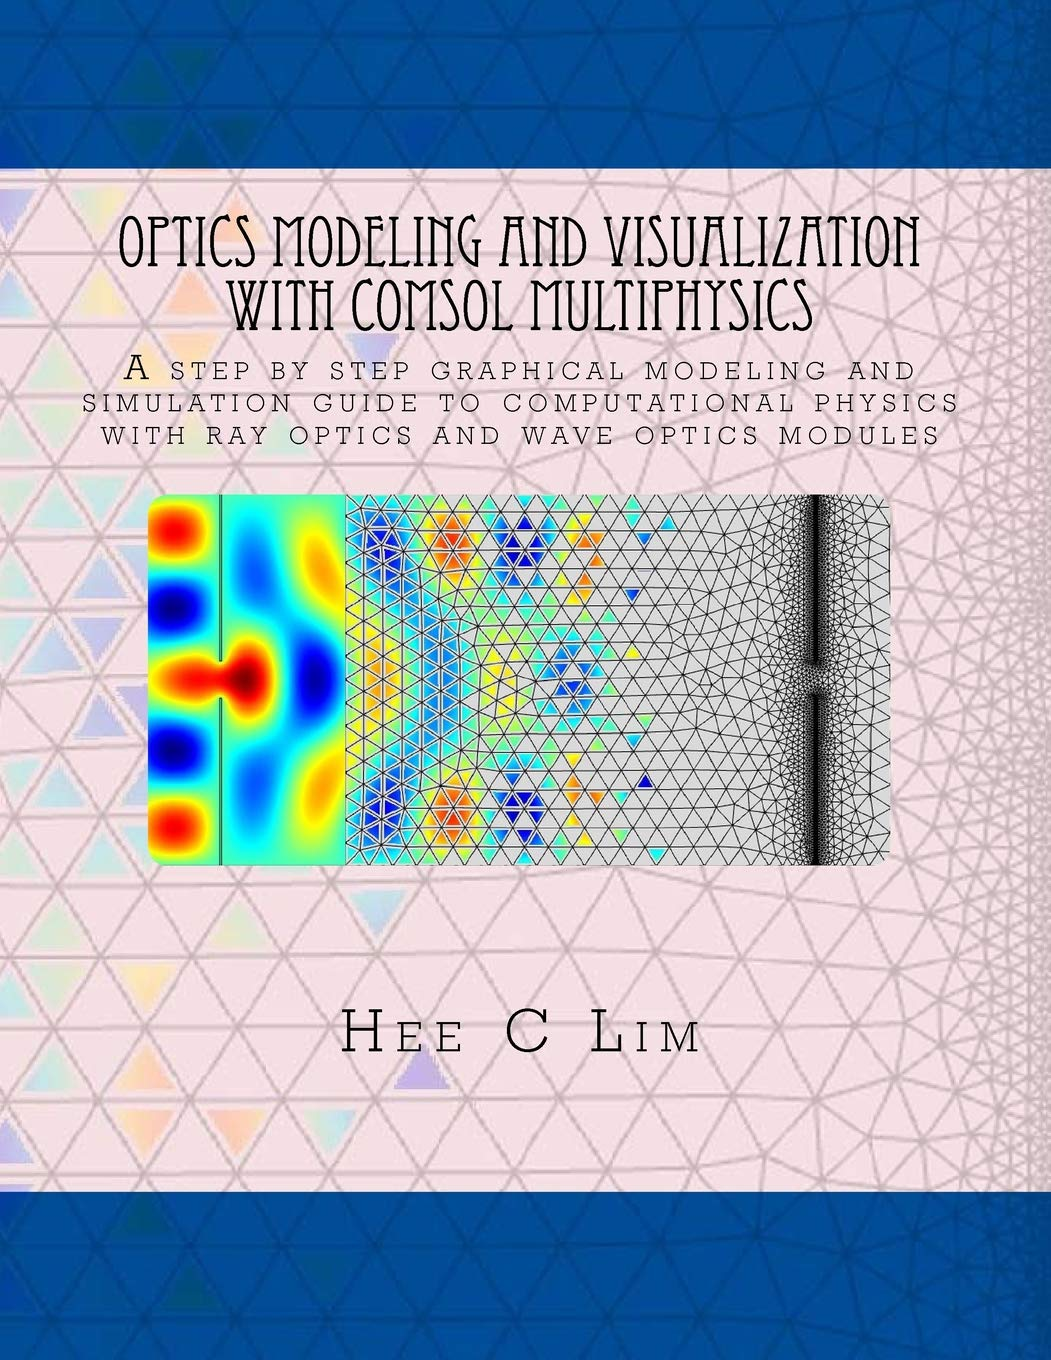 Download Optics Modeling And Visualization With COMSOL Multiphysics: A Step By Step Graphical Instruction Manuscripts 